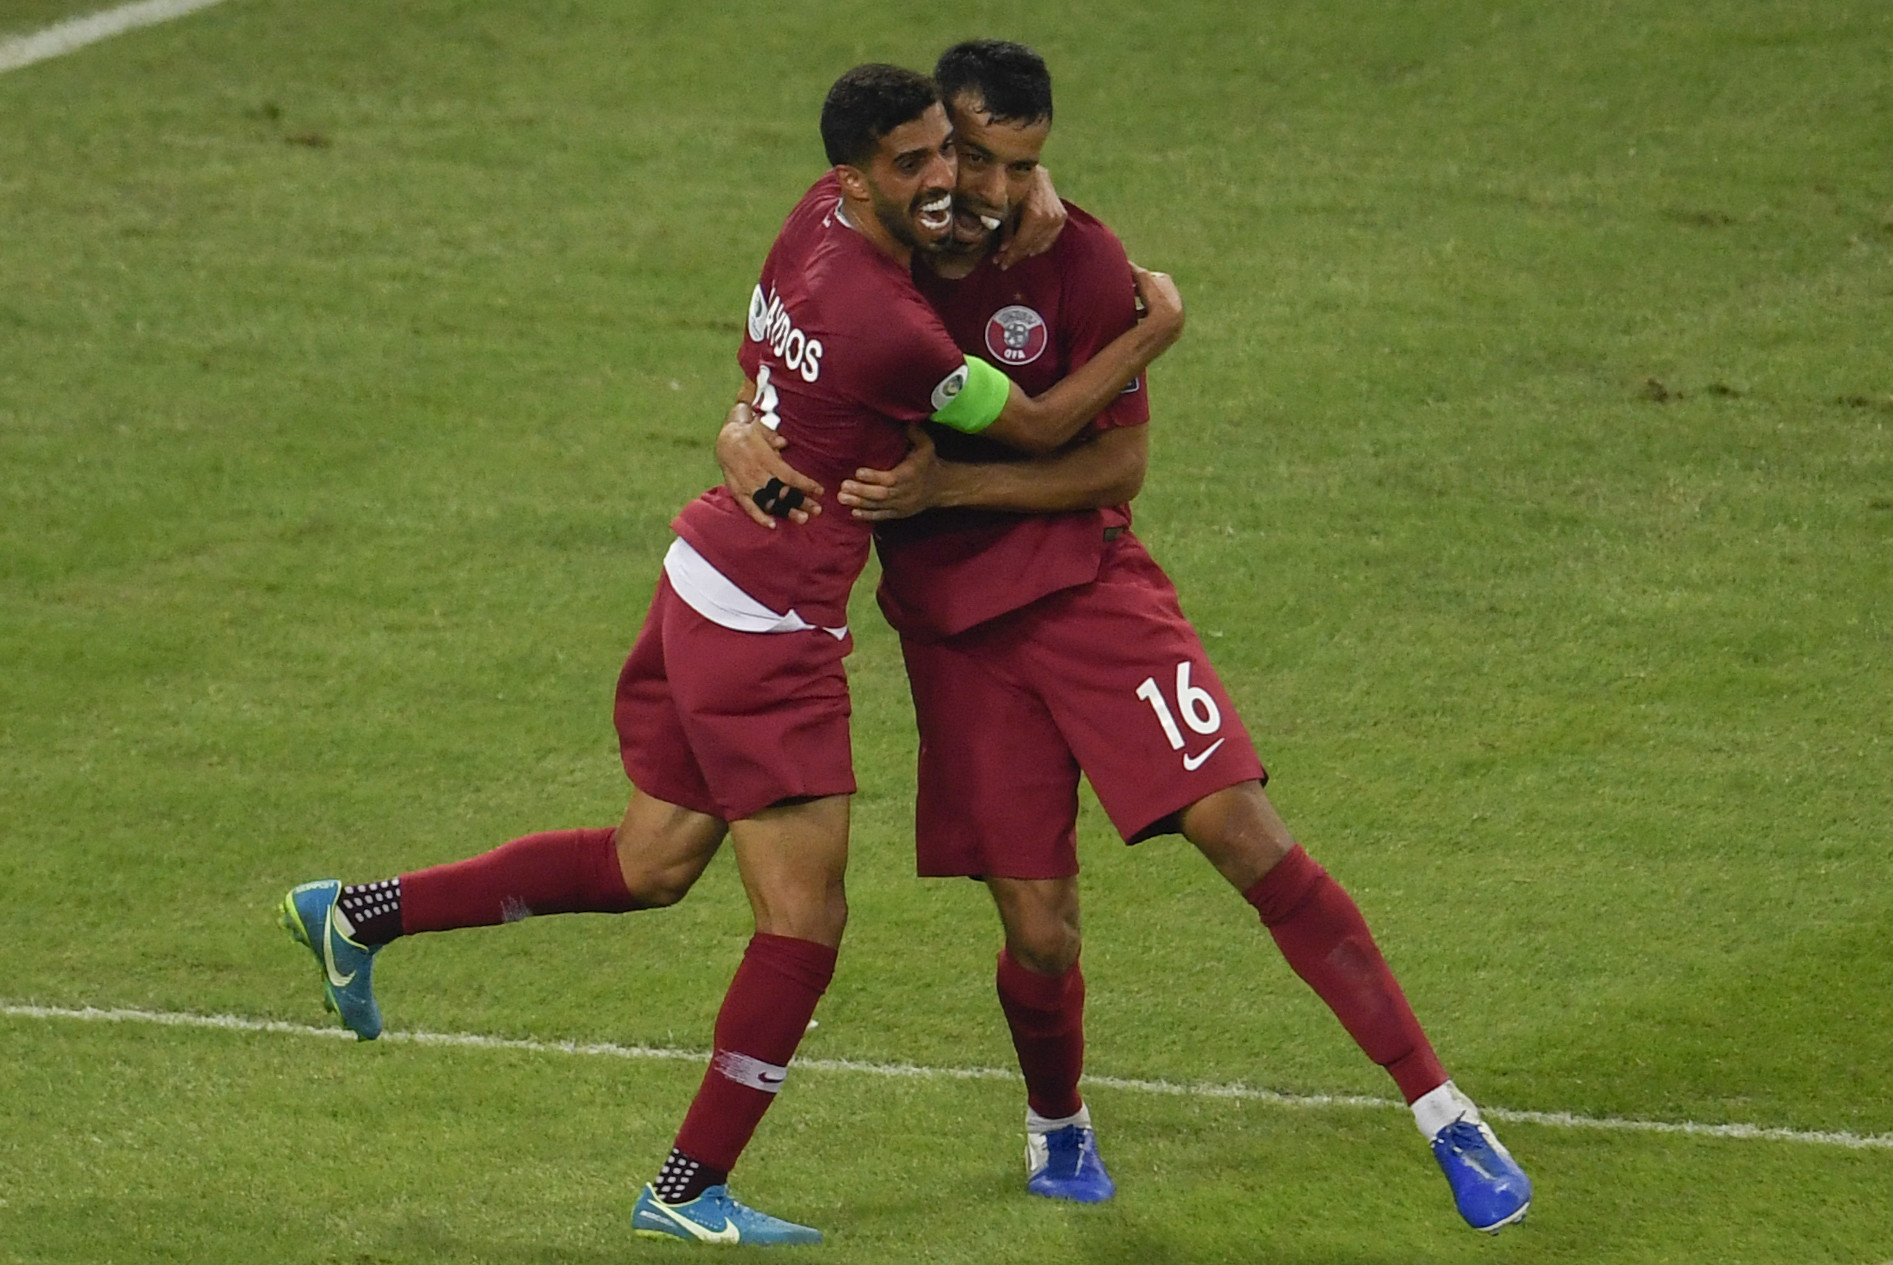 Qatar will come up against European champions Portugal in preparation for the 2022 World Cup ©Getty Images